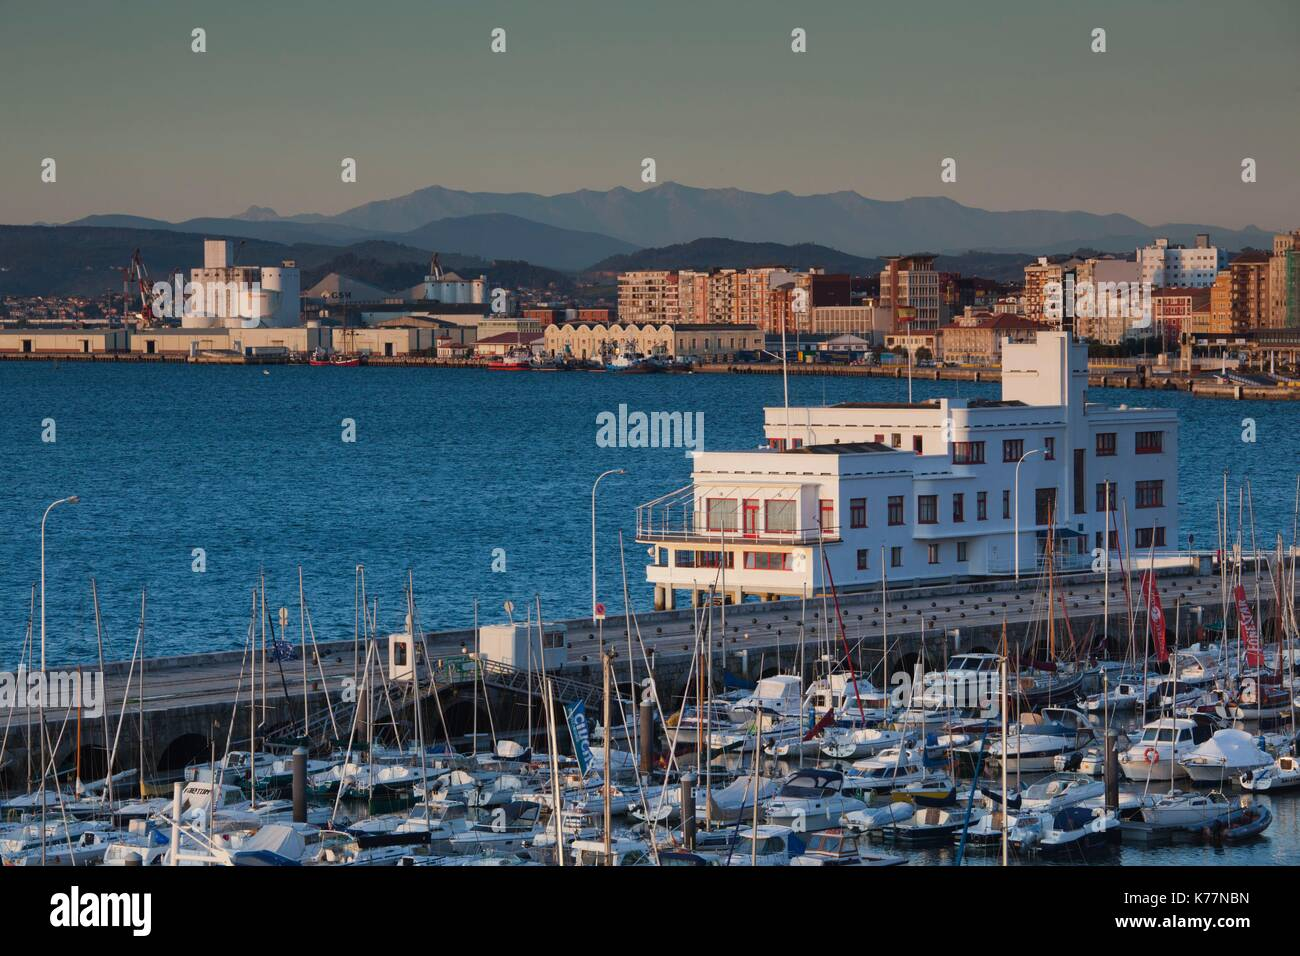 Spain, Cantabria Region, Cantabria Province, Santander, elevated view of the harborfront Stock Photo